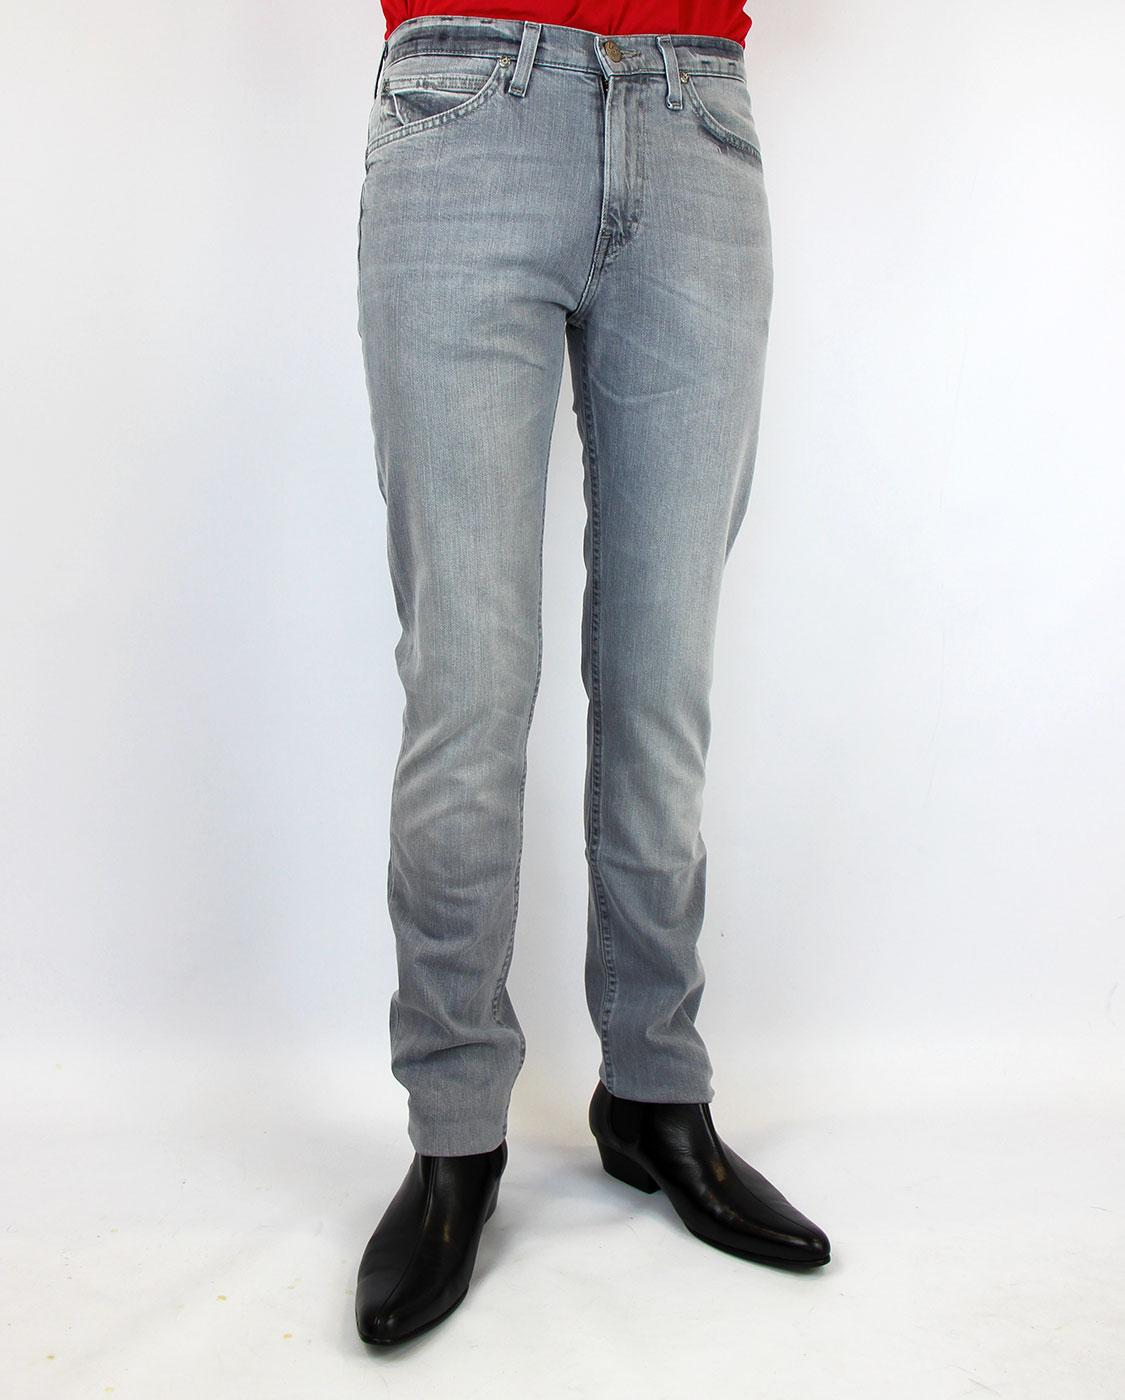 903fc3bc LEE JEANS Cain Retro Mod Washed Out Grey Skinny Jeans